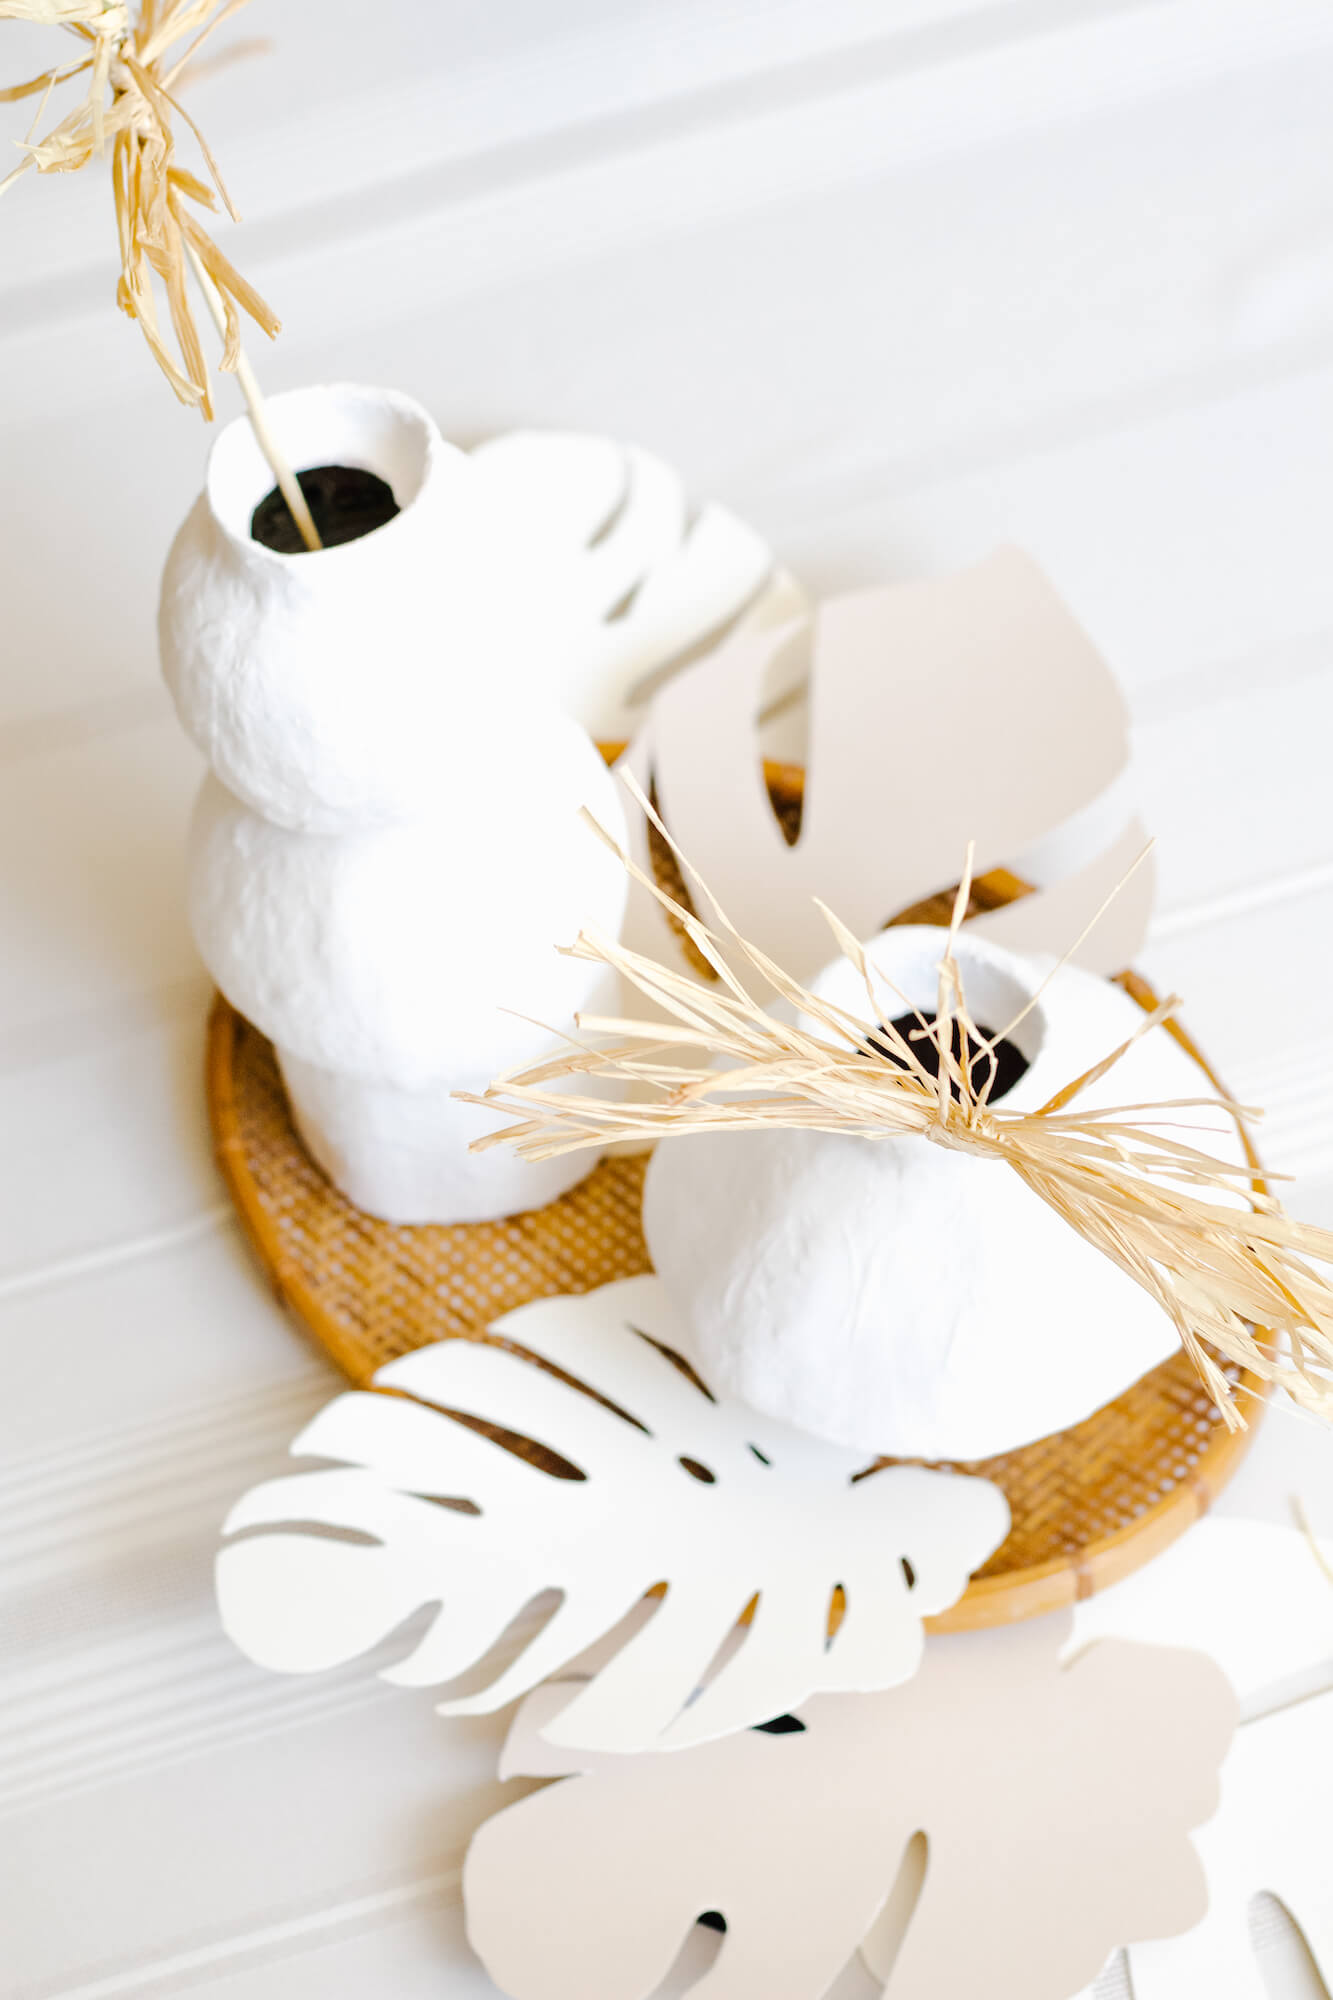 How to Make Boho Dried Raffia Palm Fronds to Accent Your Home